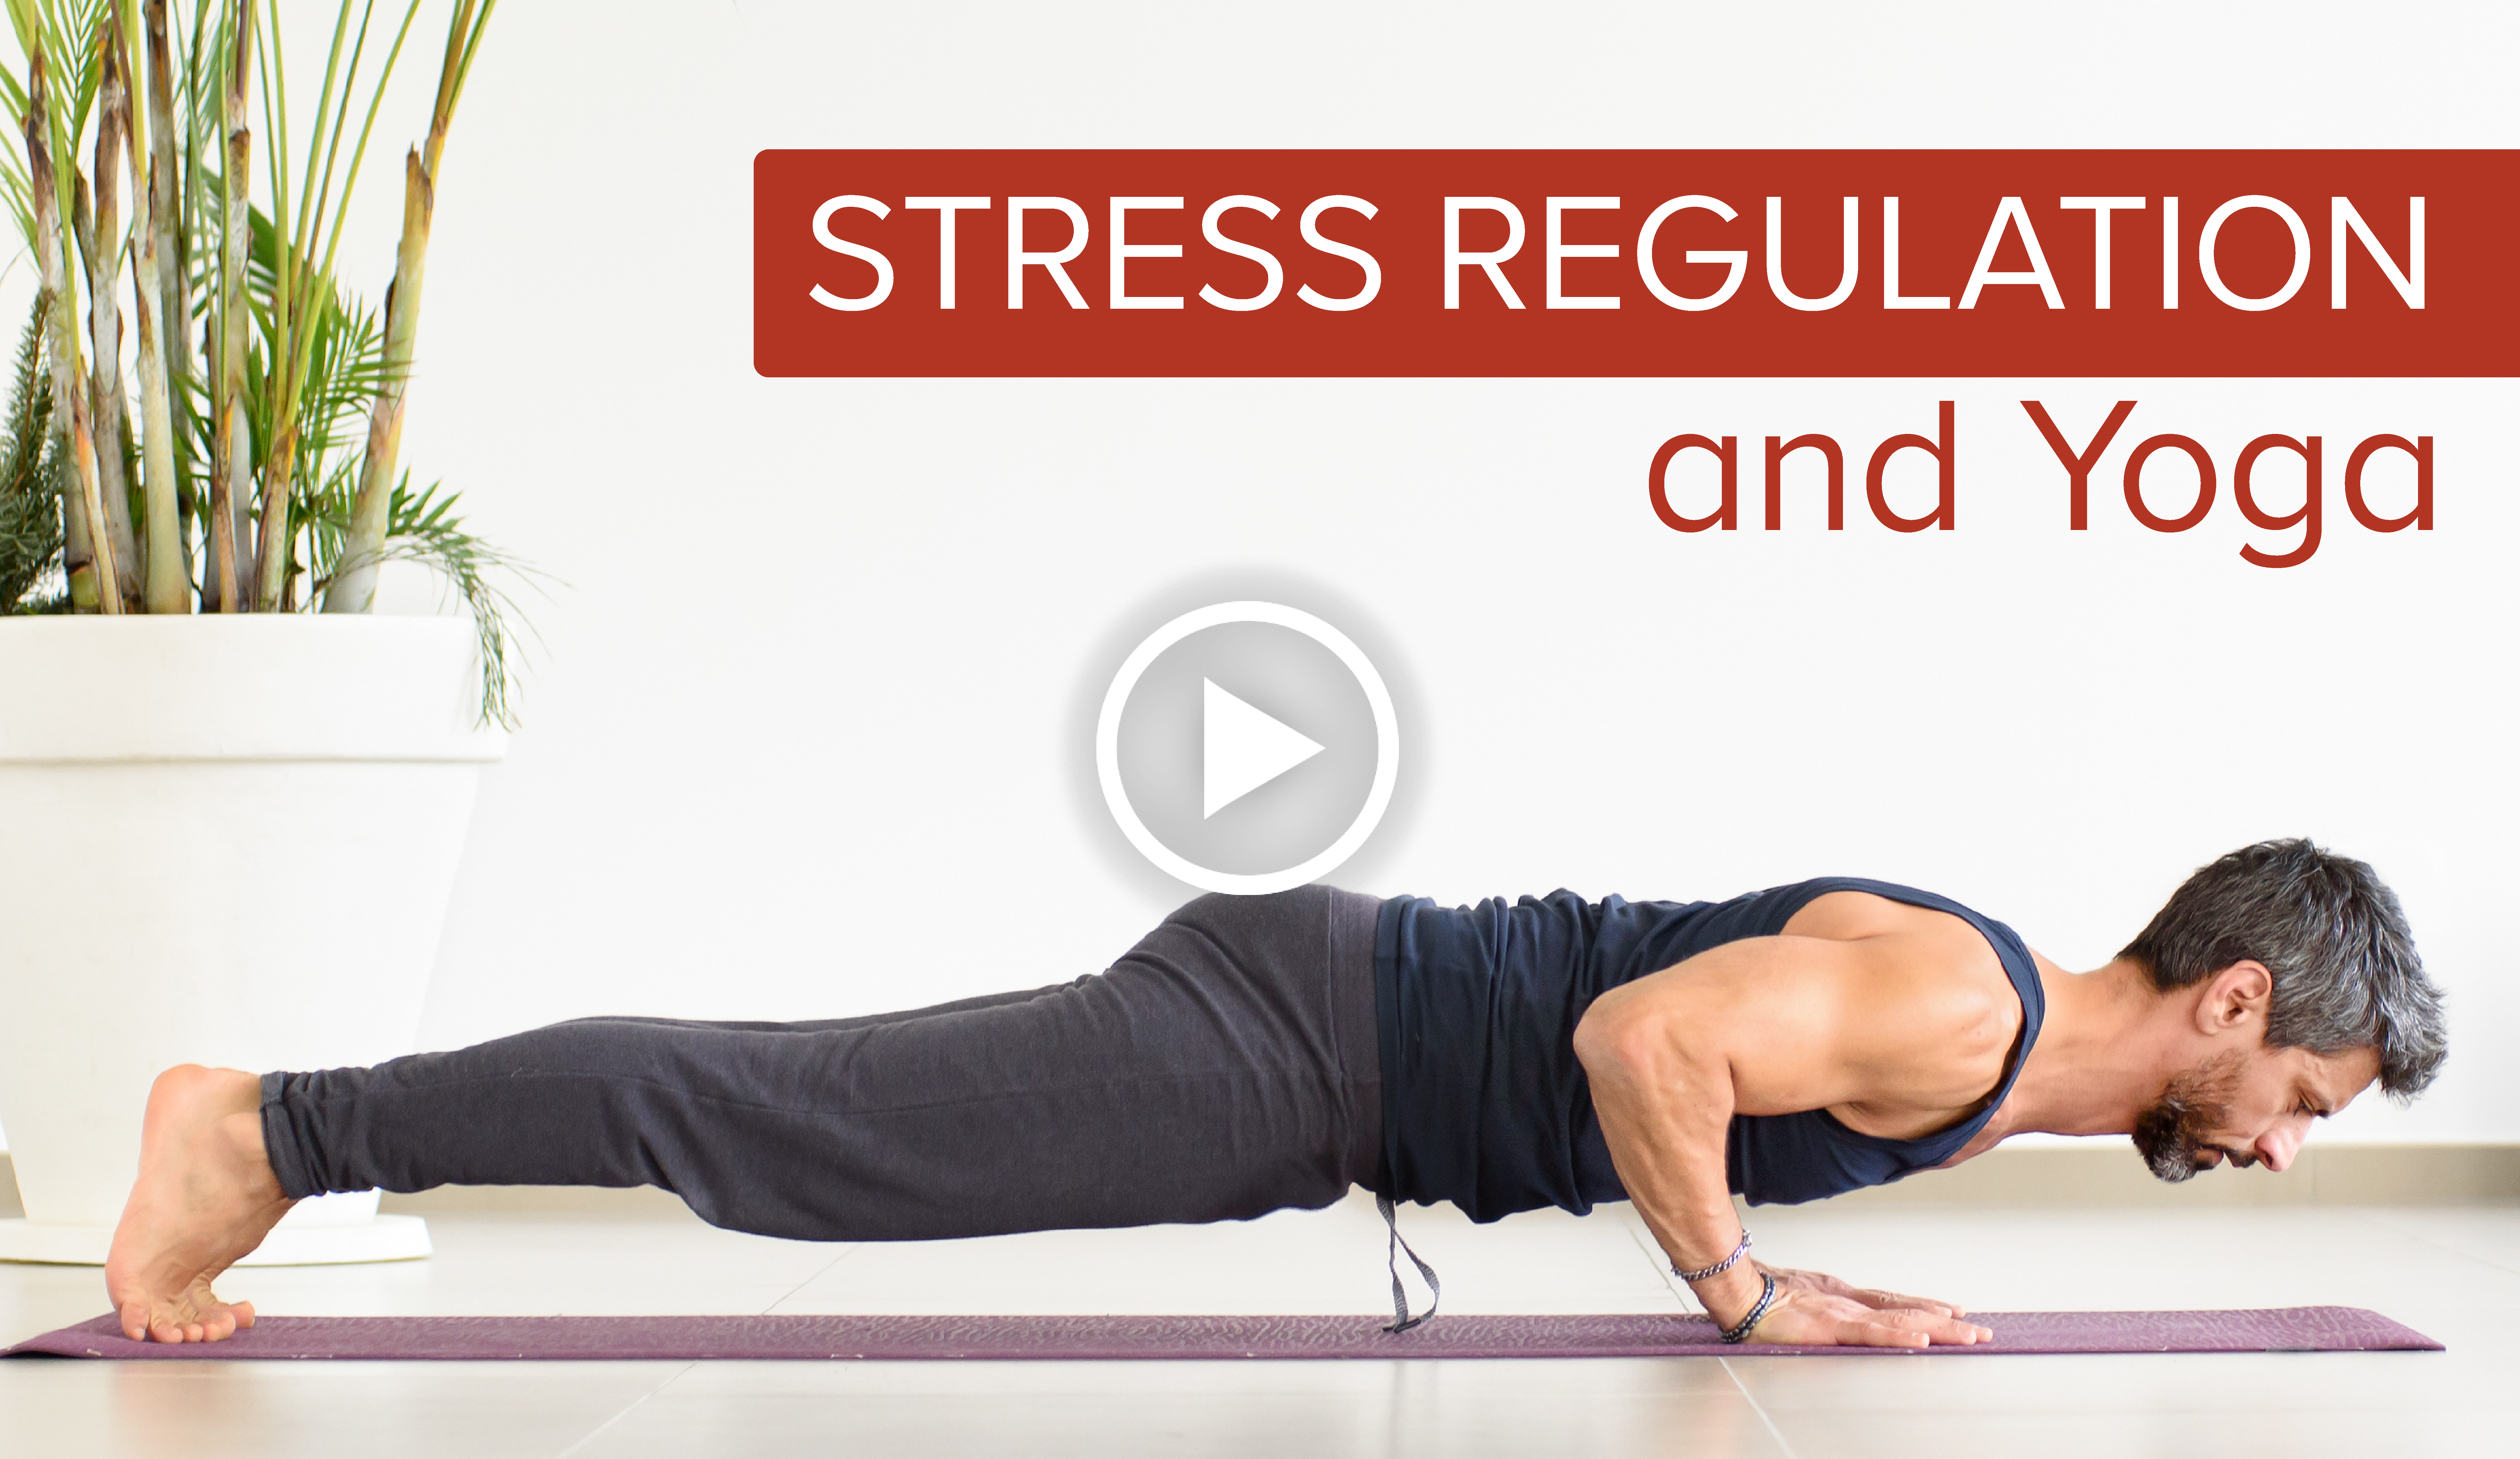 Stress Regulation and Yoga